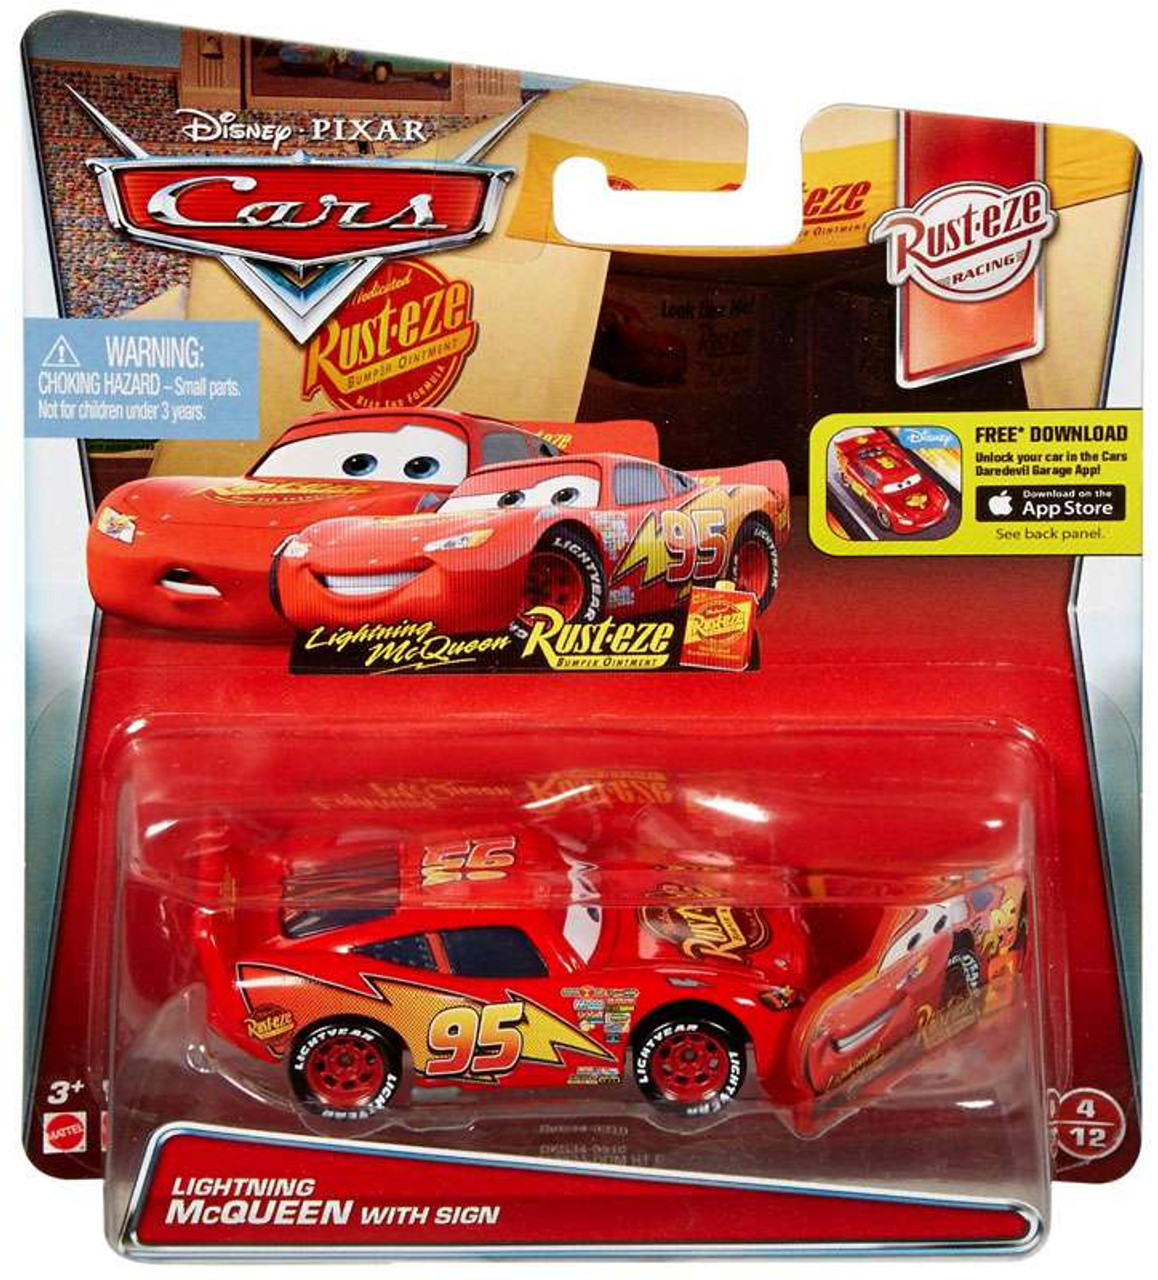 Disney Pixar Cars Rust Eze Racing Lightning Mcqueen With Sign 155